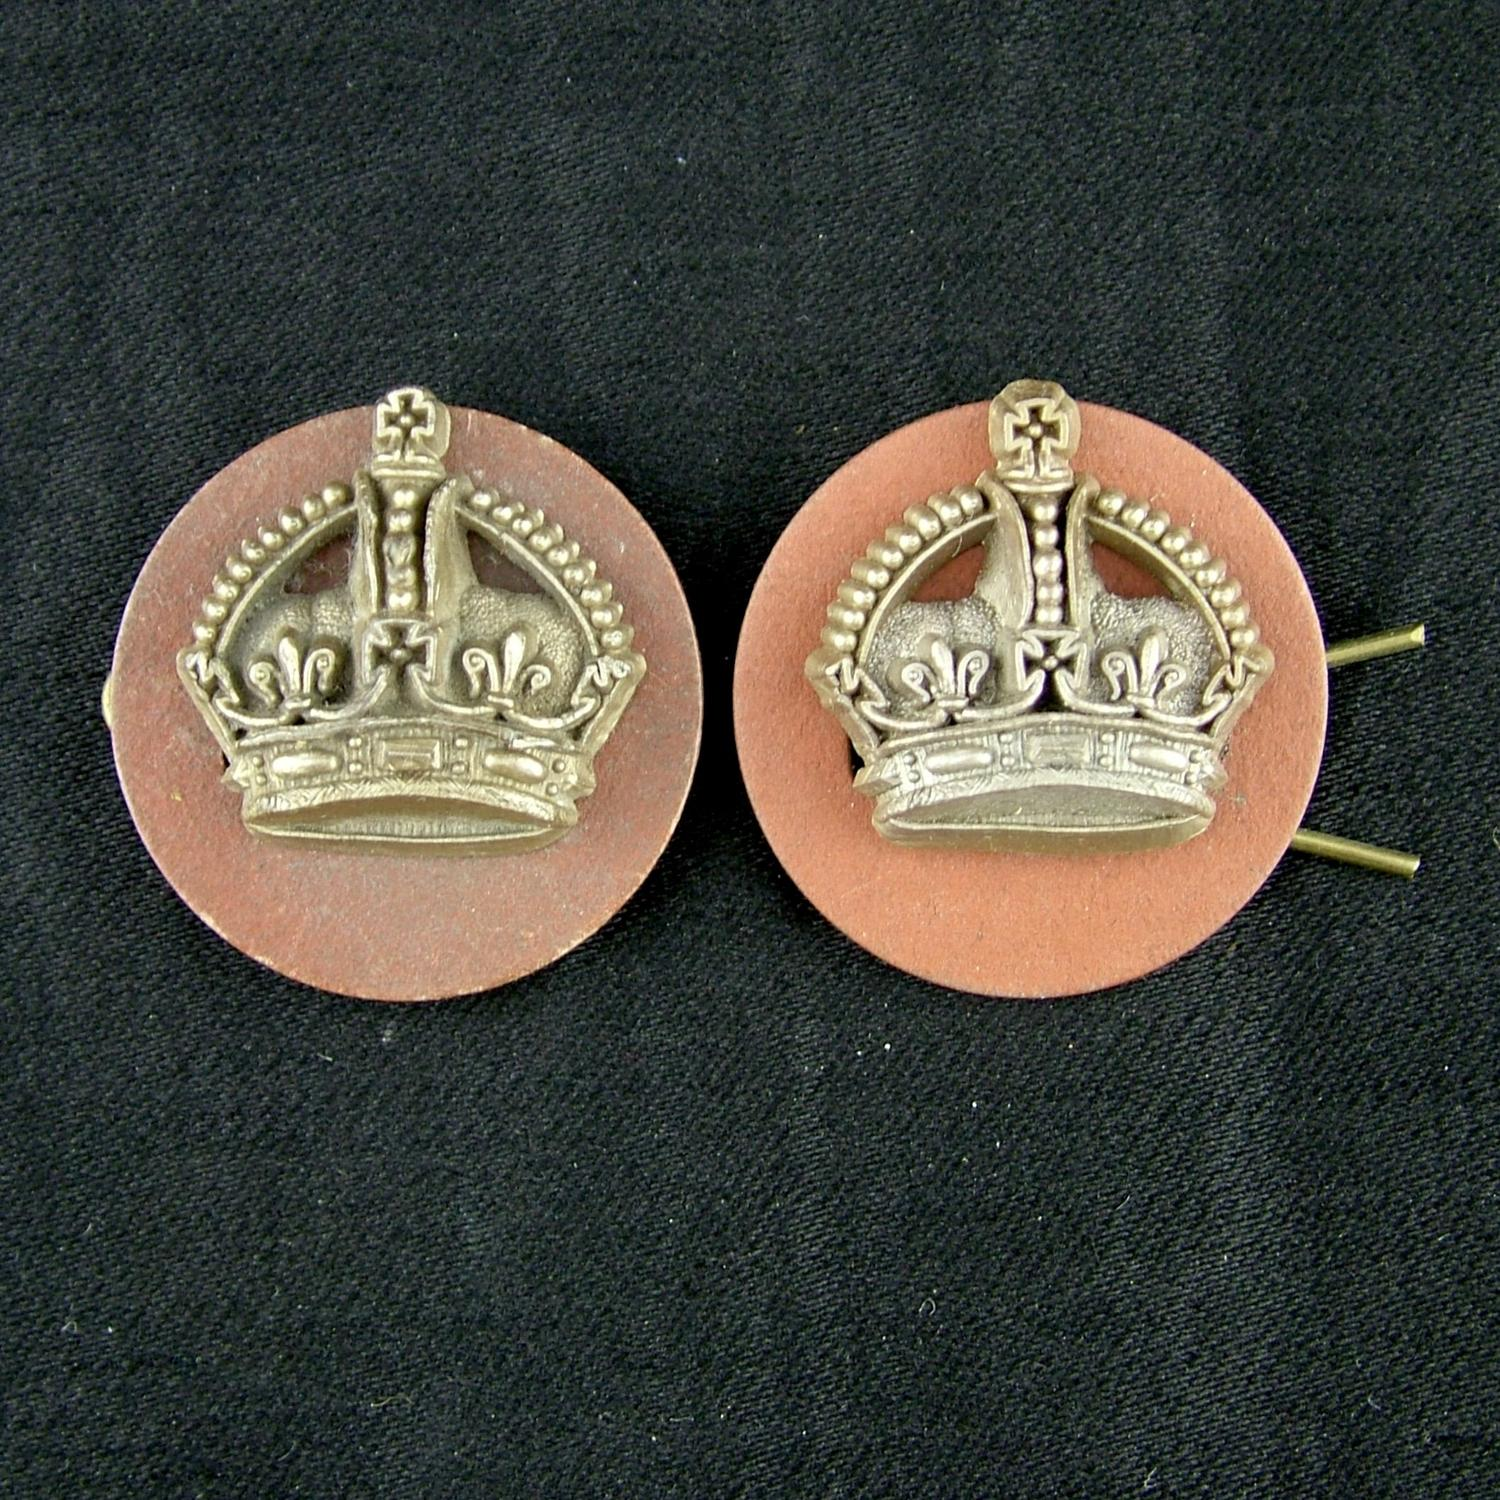 RAF flight sergeant crowns, pair